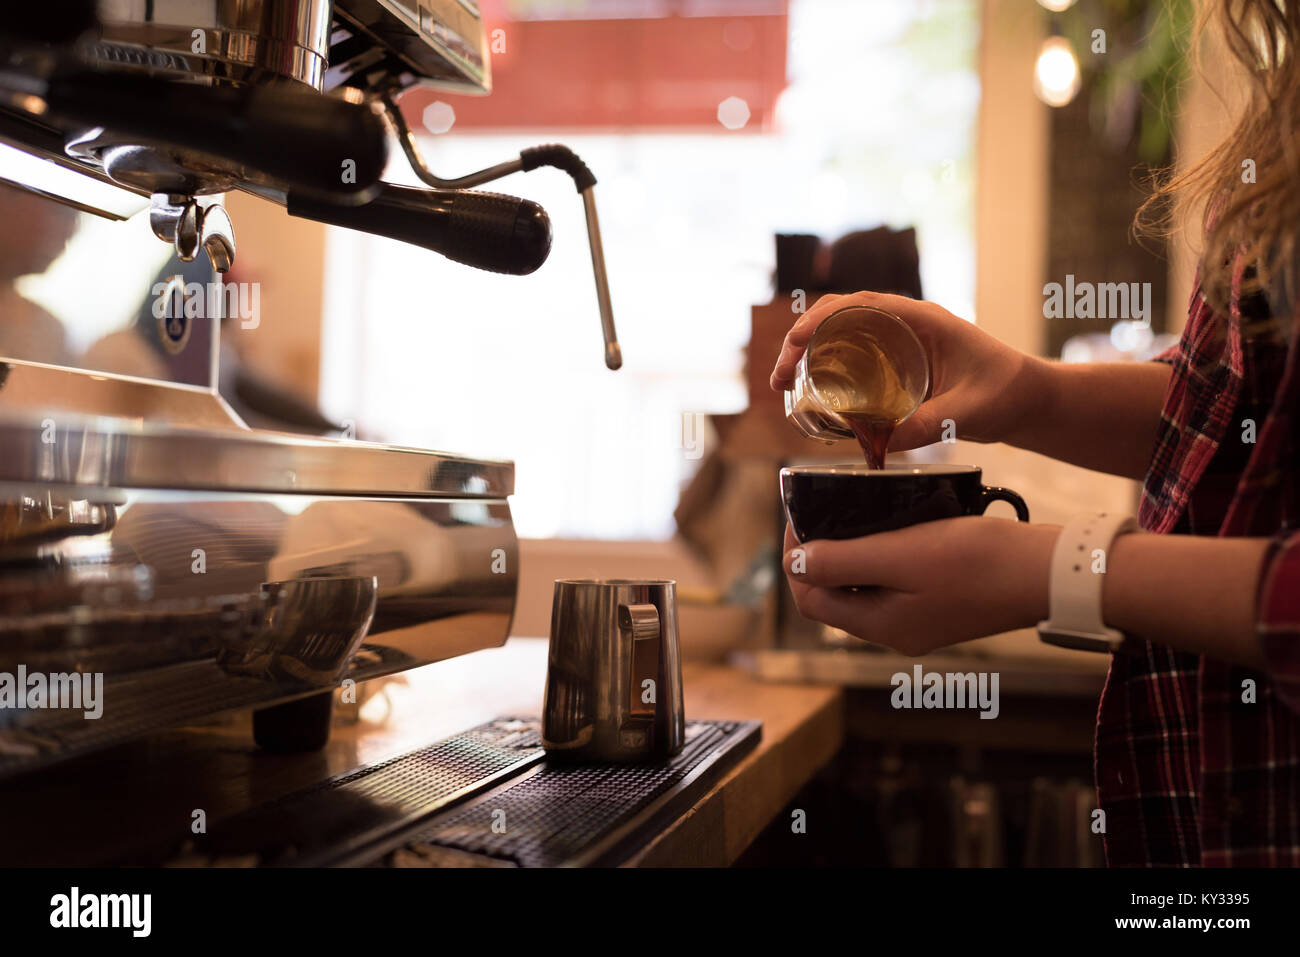 Mid section of barista pouring coffee in cup - Stock Image